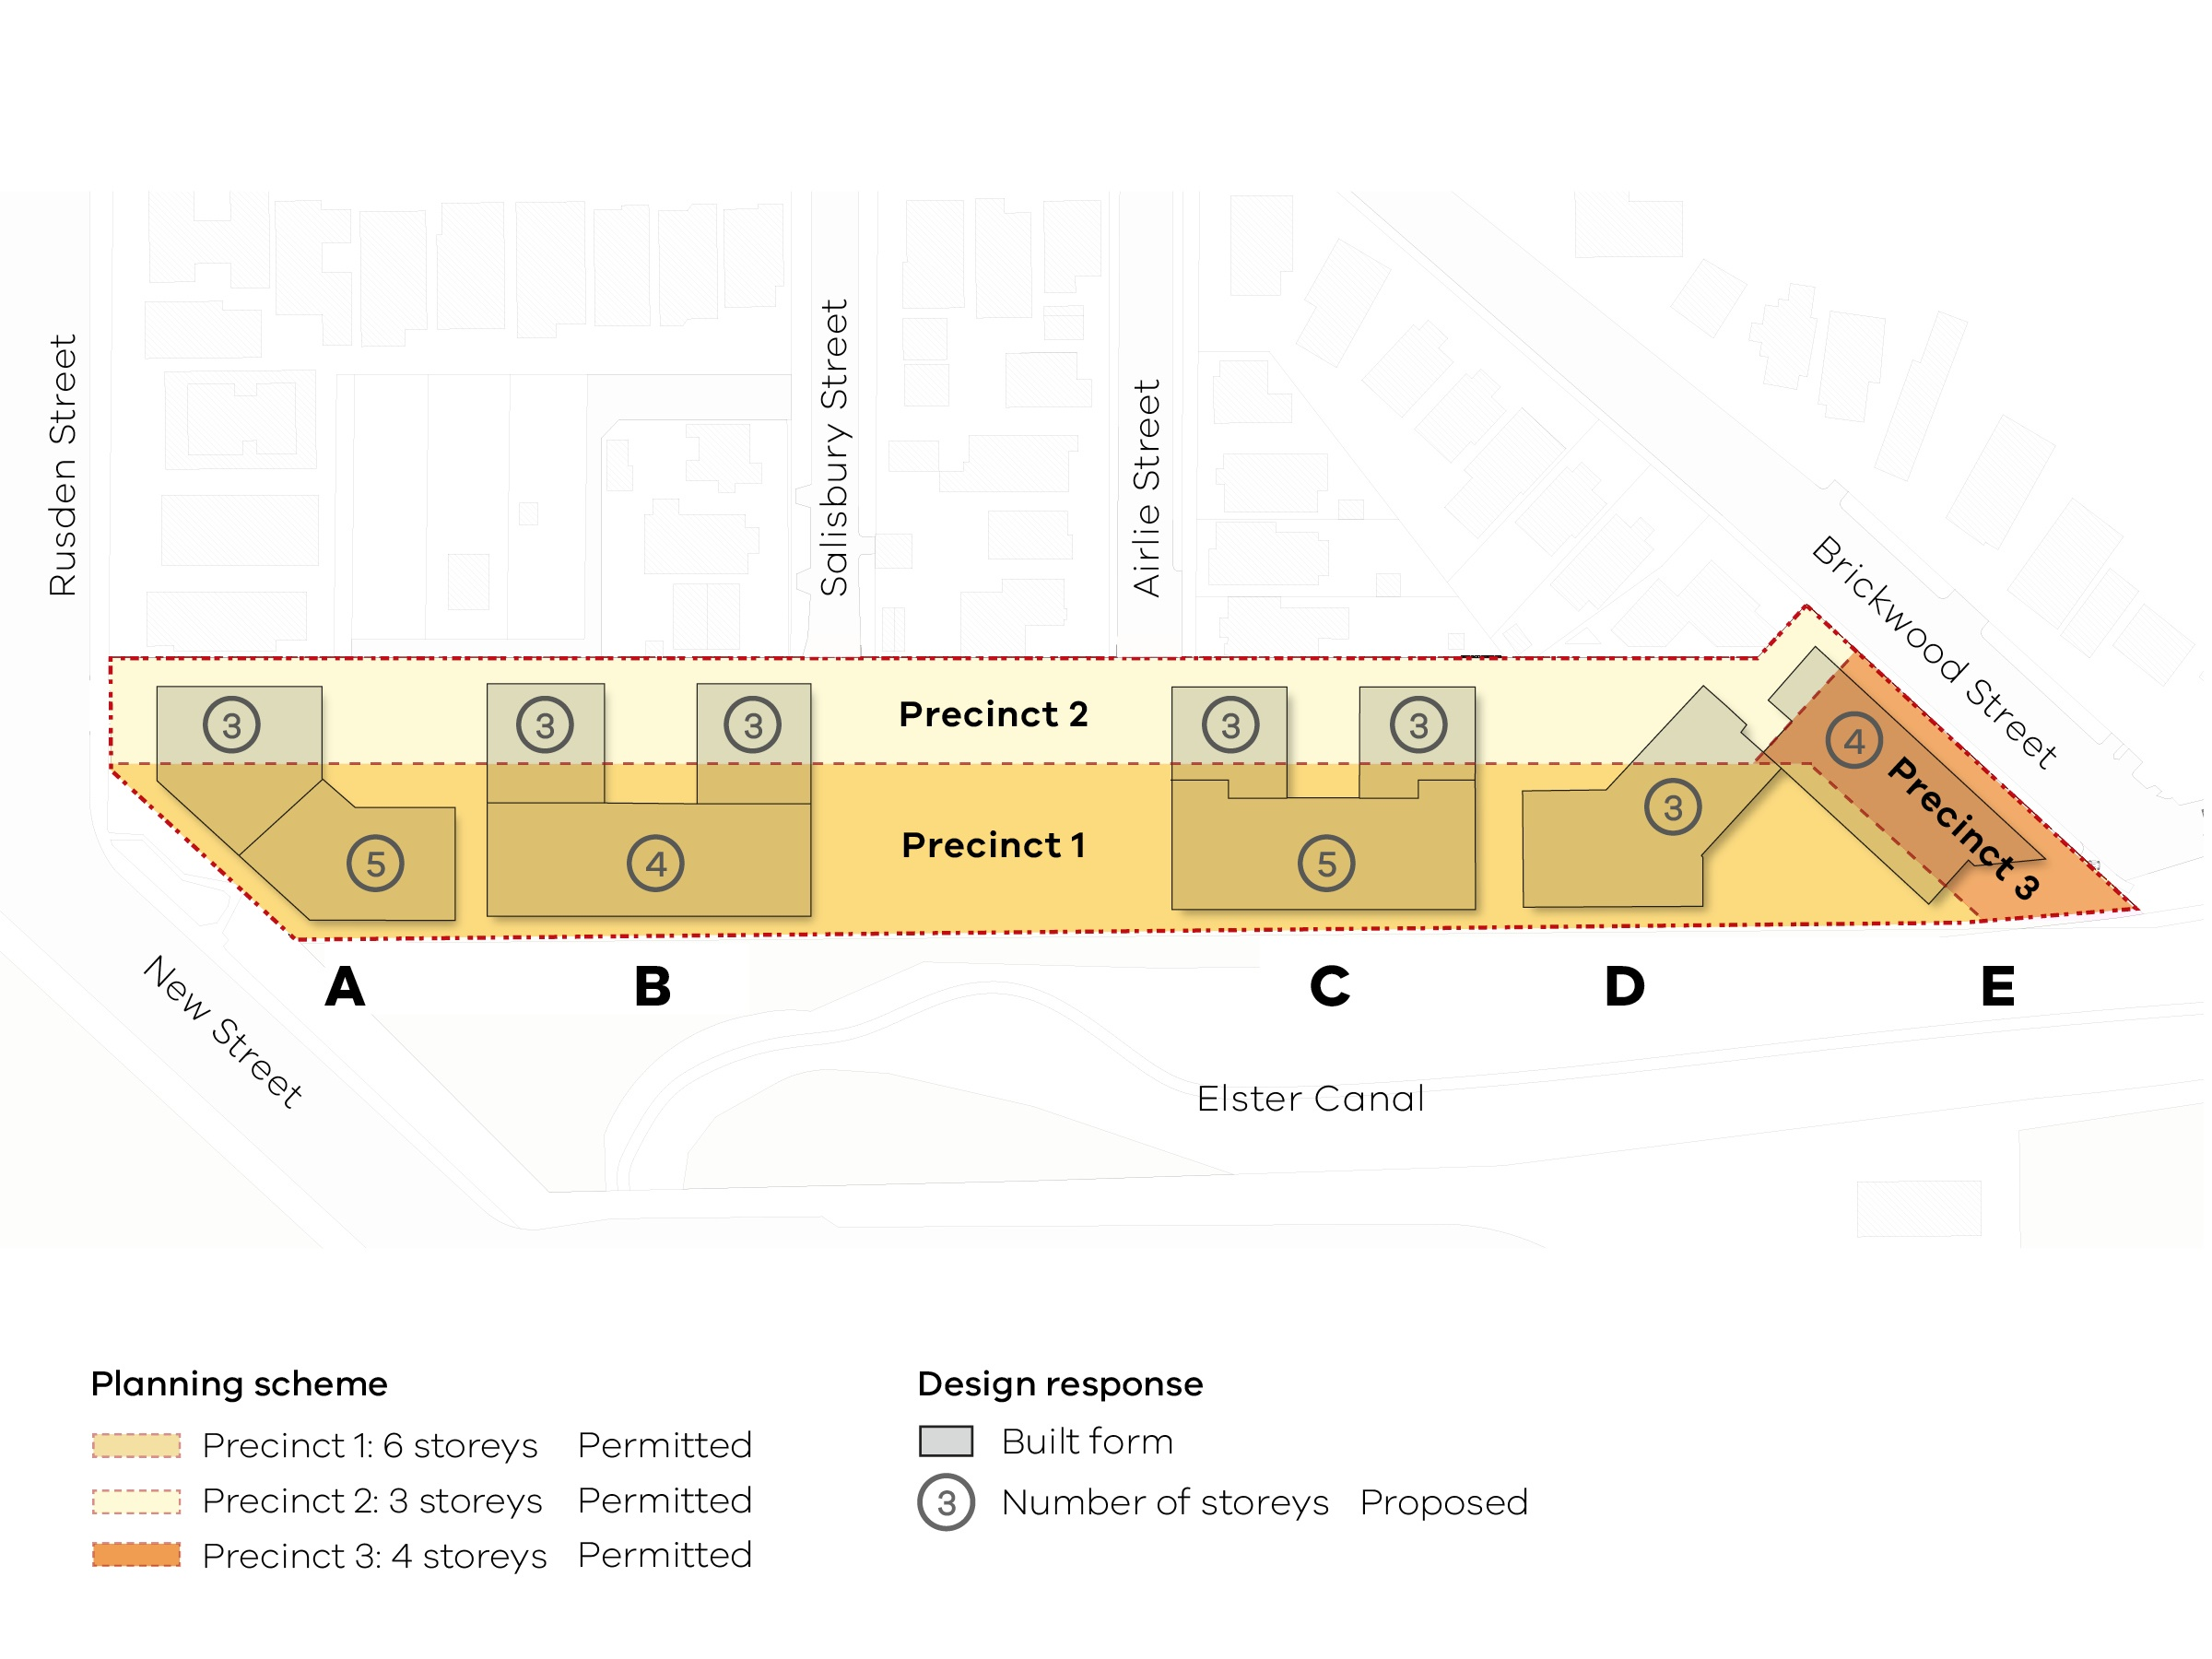 Diagram showing the permitted heights according to the planning scheme and the design response with the proposed heights.  Precinct 1 runs along the south-western side of the site and covers around 2/3 of the width (east-west). 6 storeys are permitted in